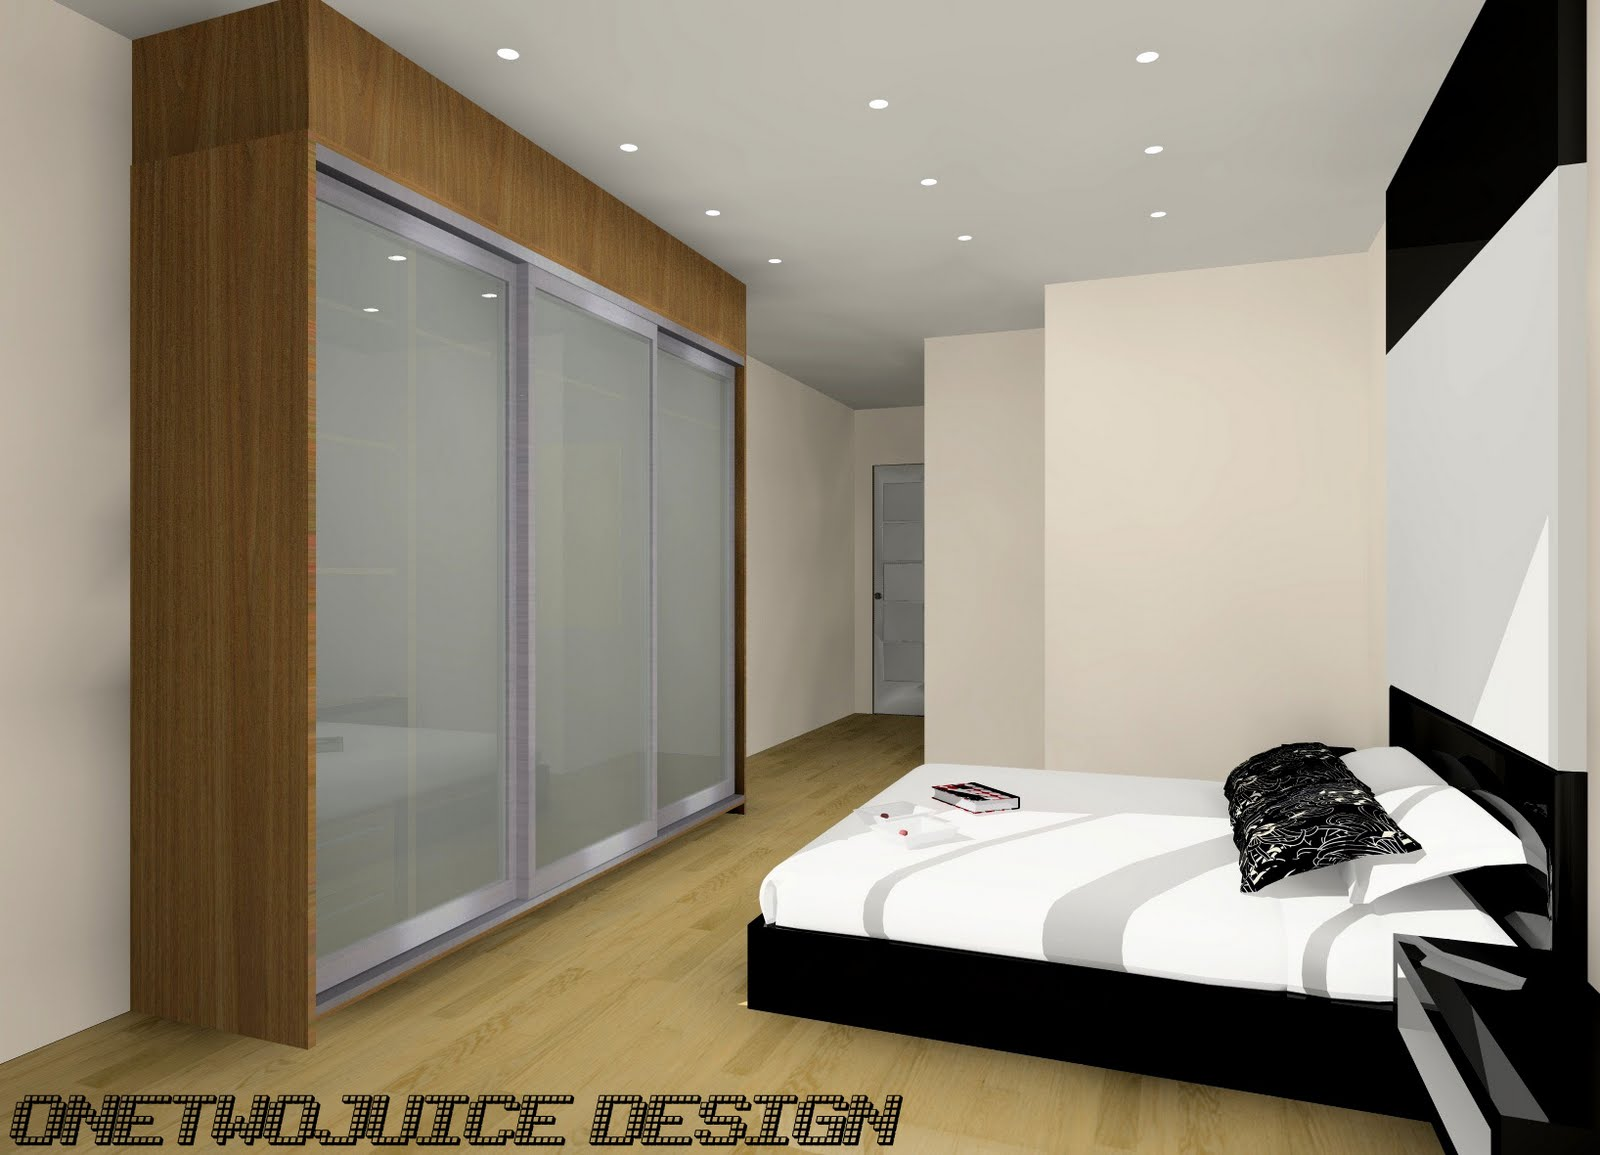 Onetwojuice photographix kitchen wardrobe design for Kitchen wardrobe design